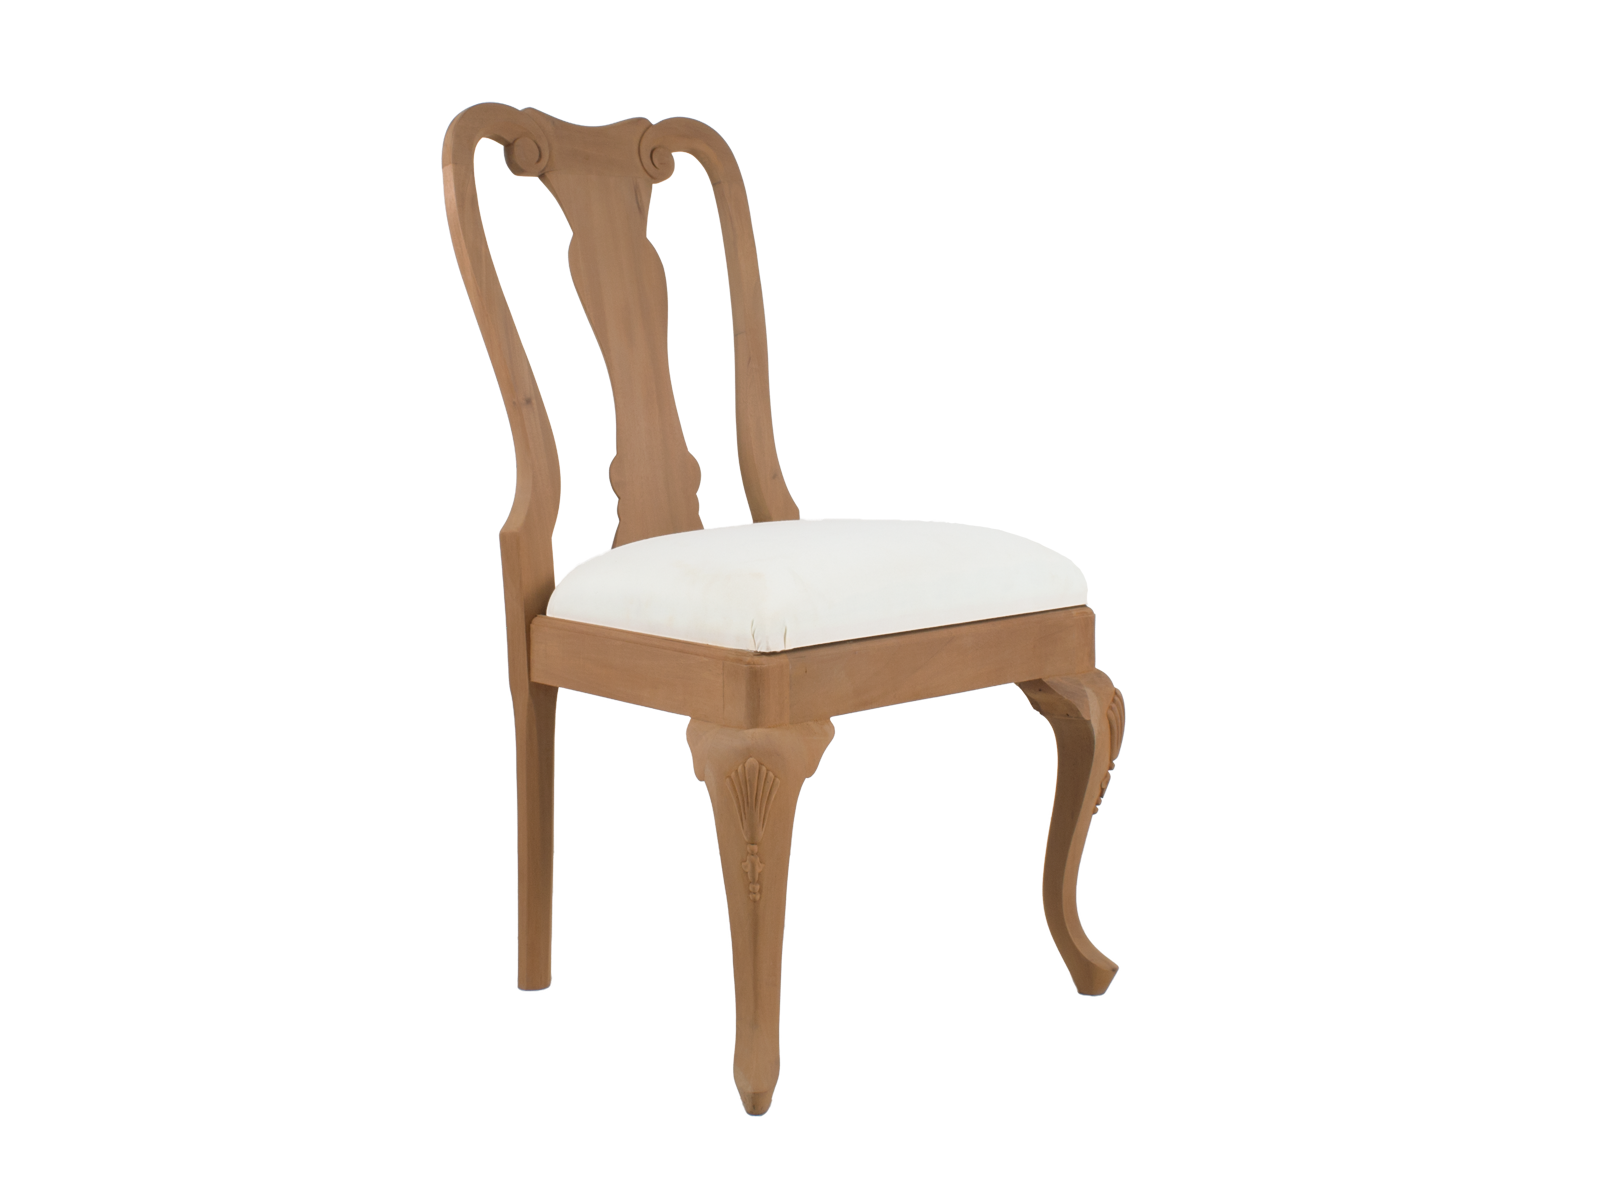 Queen anne dining chair hidden mill for Dining room chairs queen anne